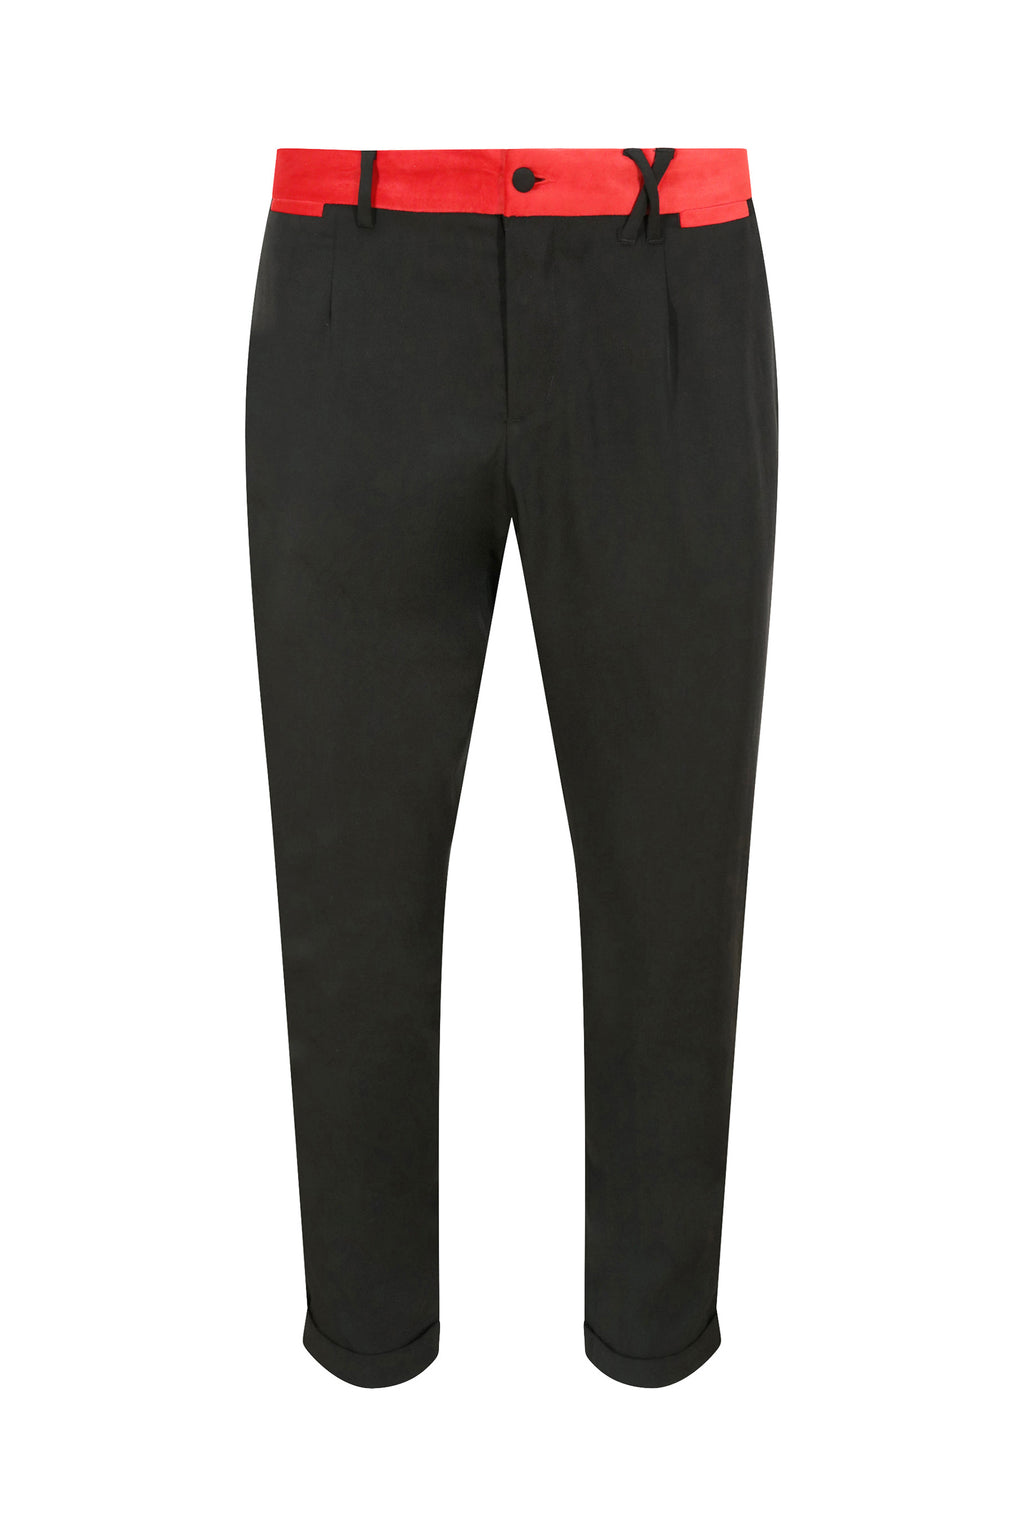 Unisex Tuxedo Trousers with Red Velvet Stripe